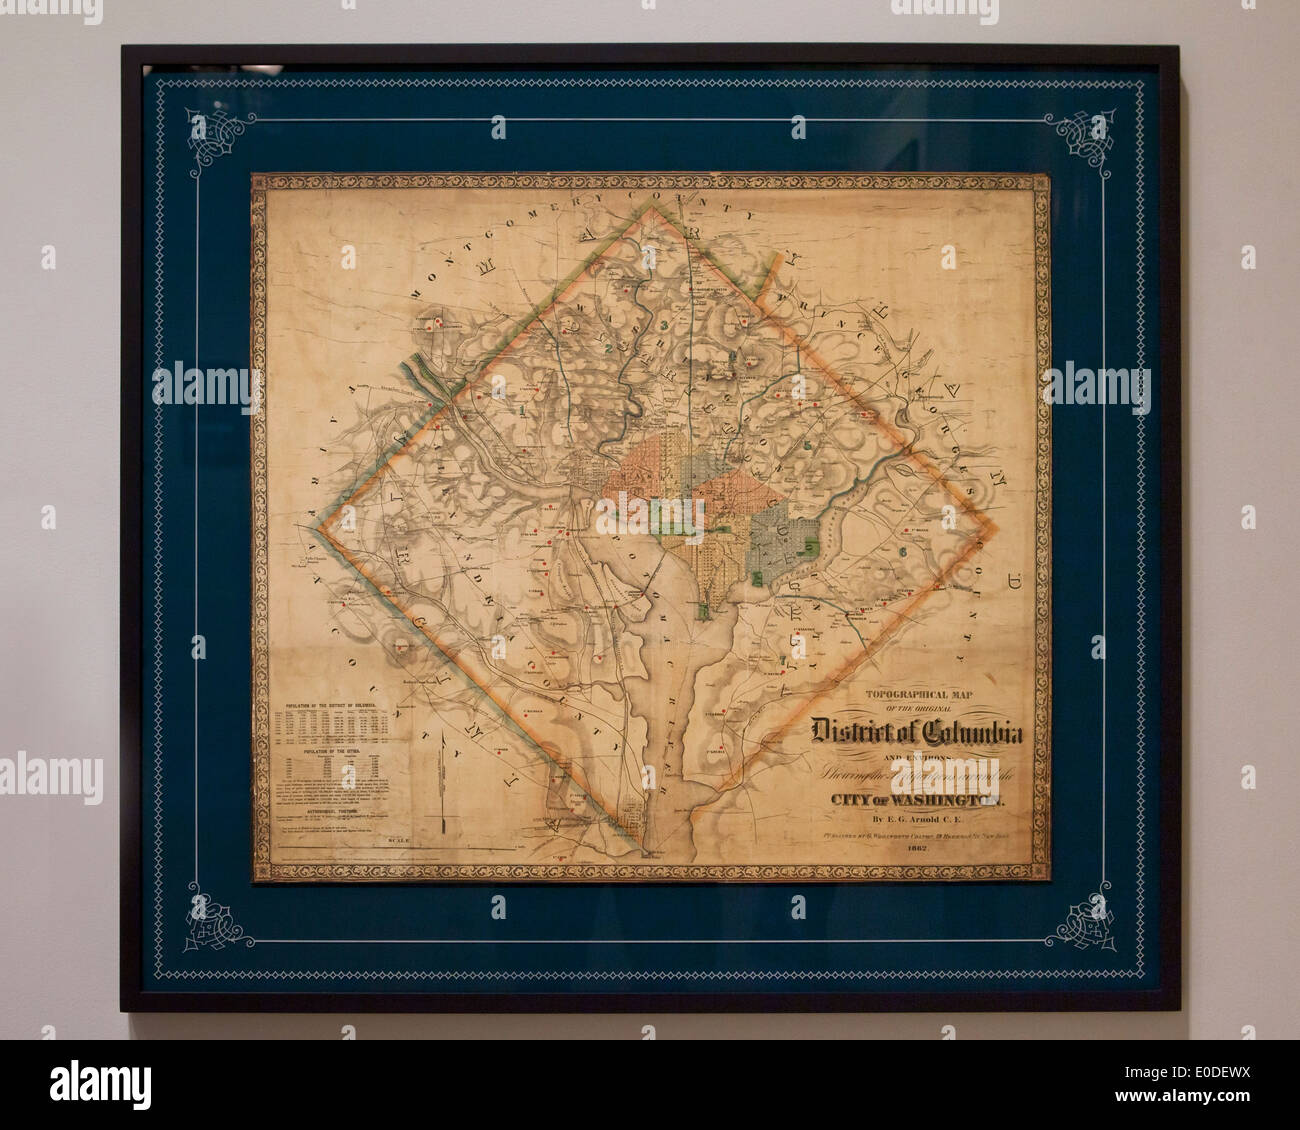 Vintage map of Washington, DC USA - c. 1862 - Stock Image